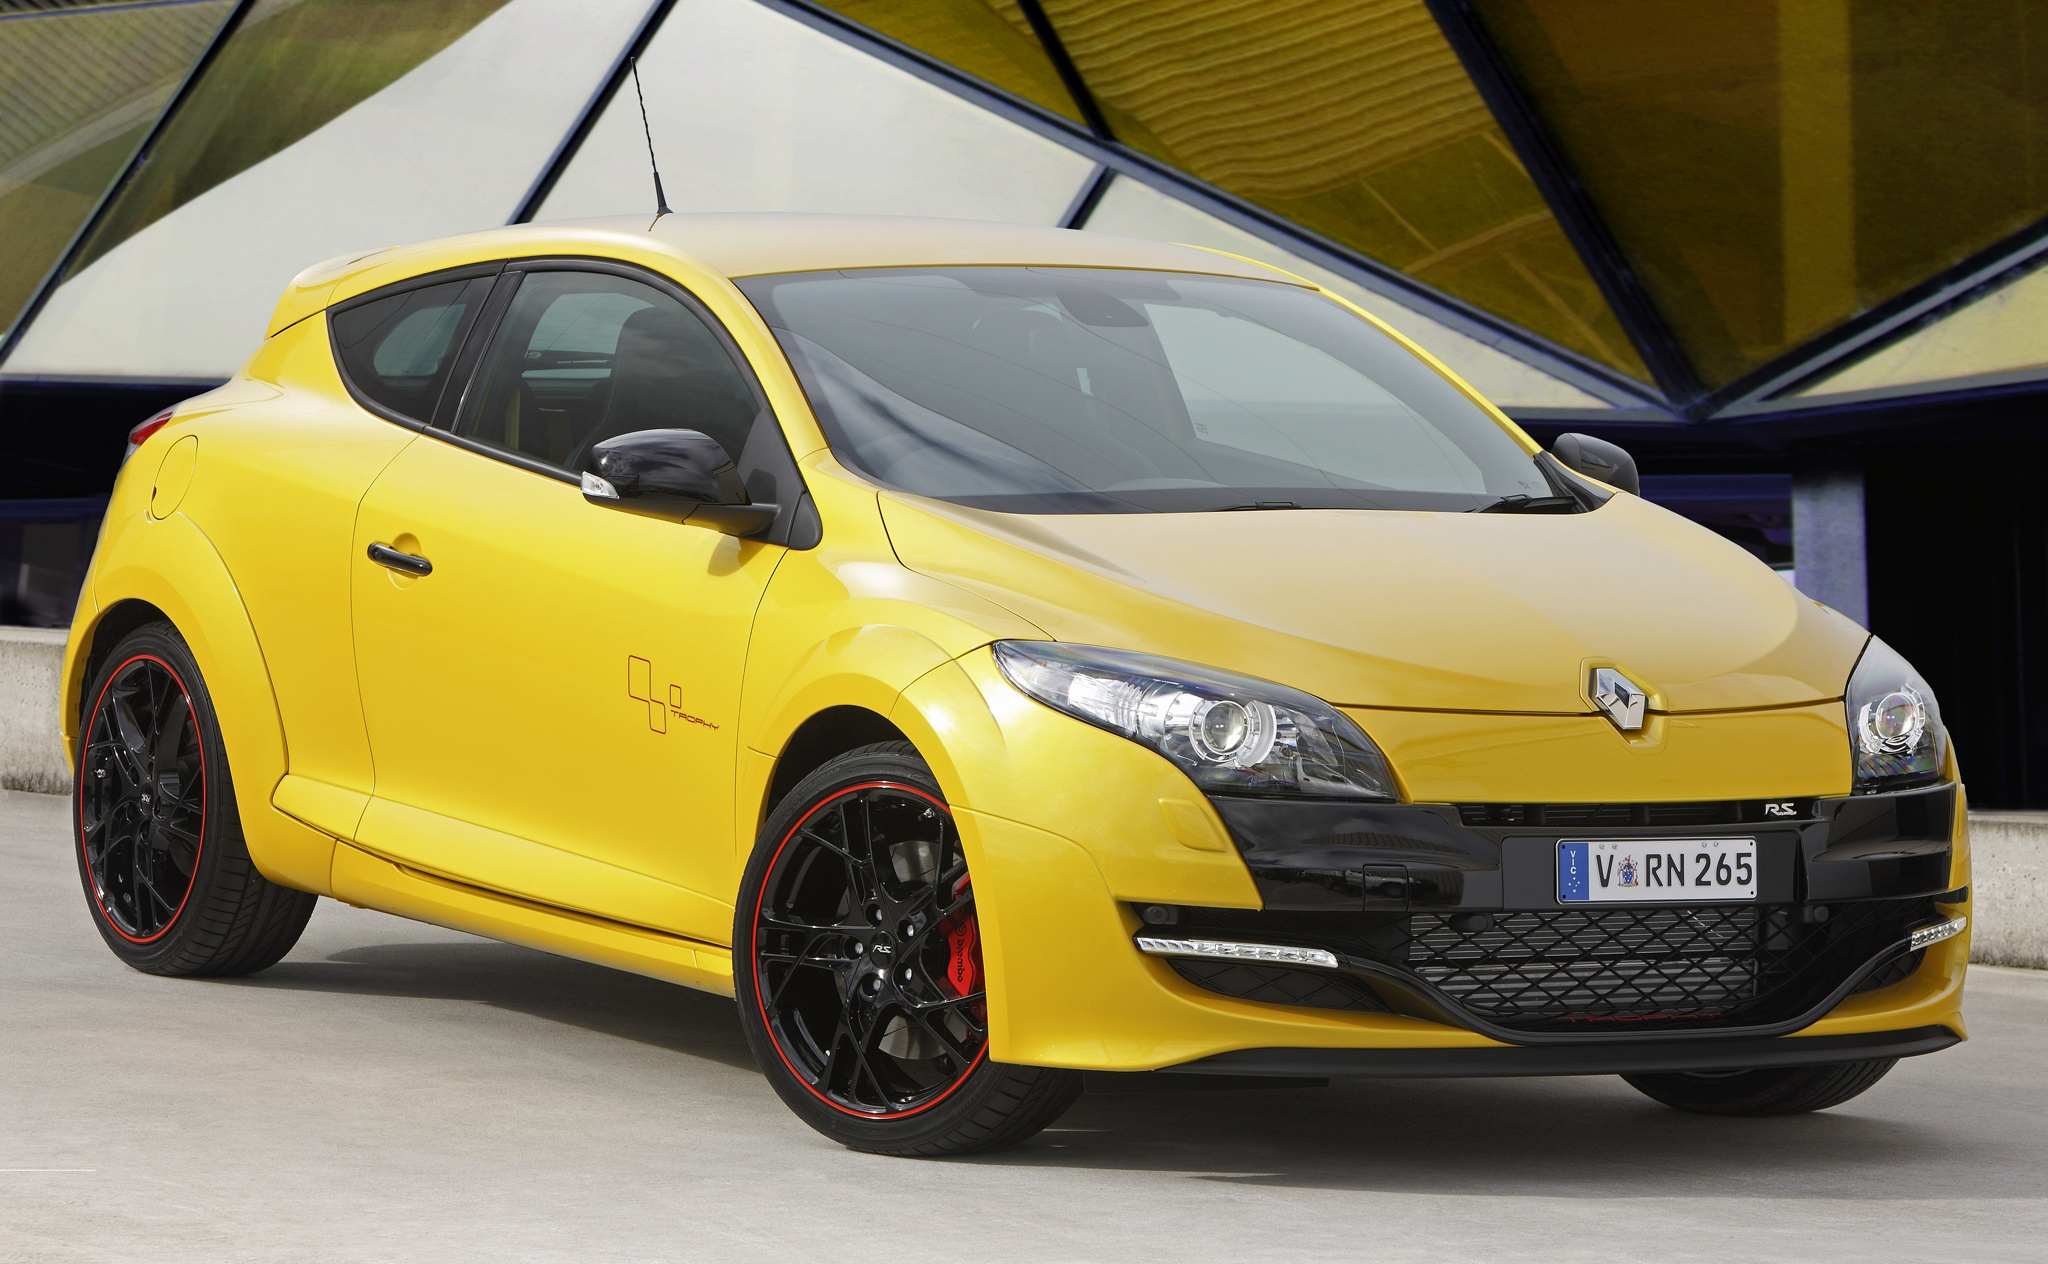 renault megane rs 265 trophy introduced rm244k paul tan